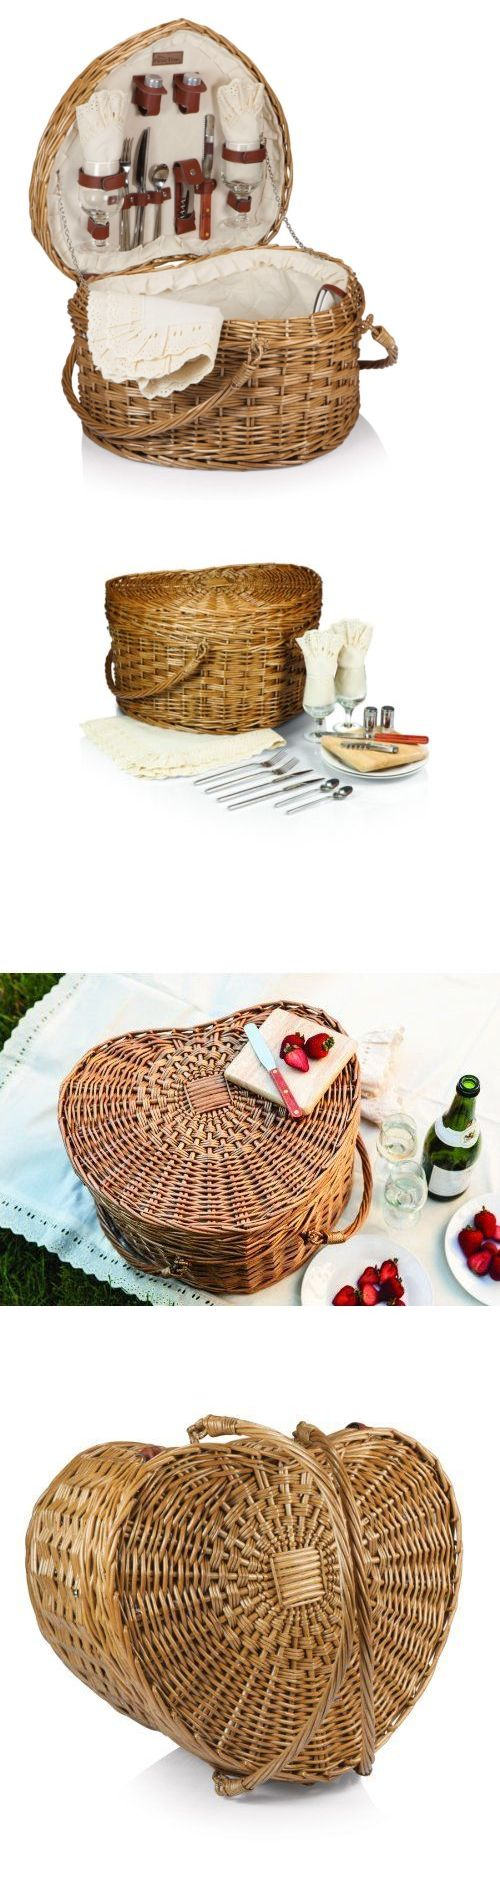 Picnic Baskets and Backpacks 38249: Heart-Shaped Romantic Picnic Basket For 2 - Deluxe Picnic Basket Set -> BUY IT NOW ONLY: $124.69 on eBay!